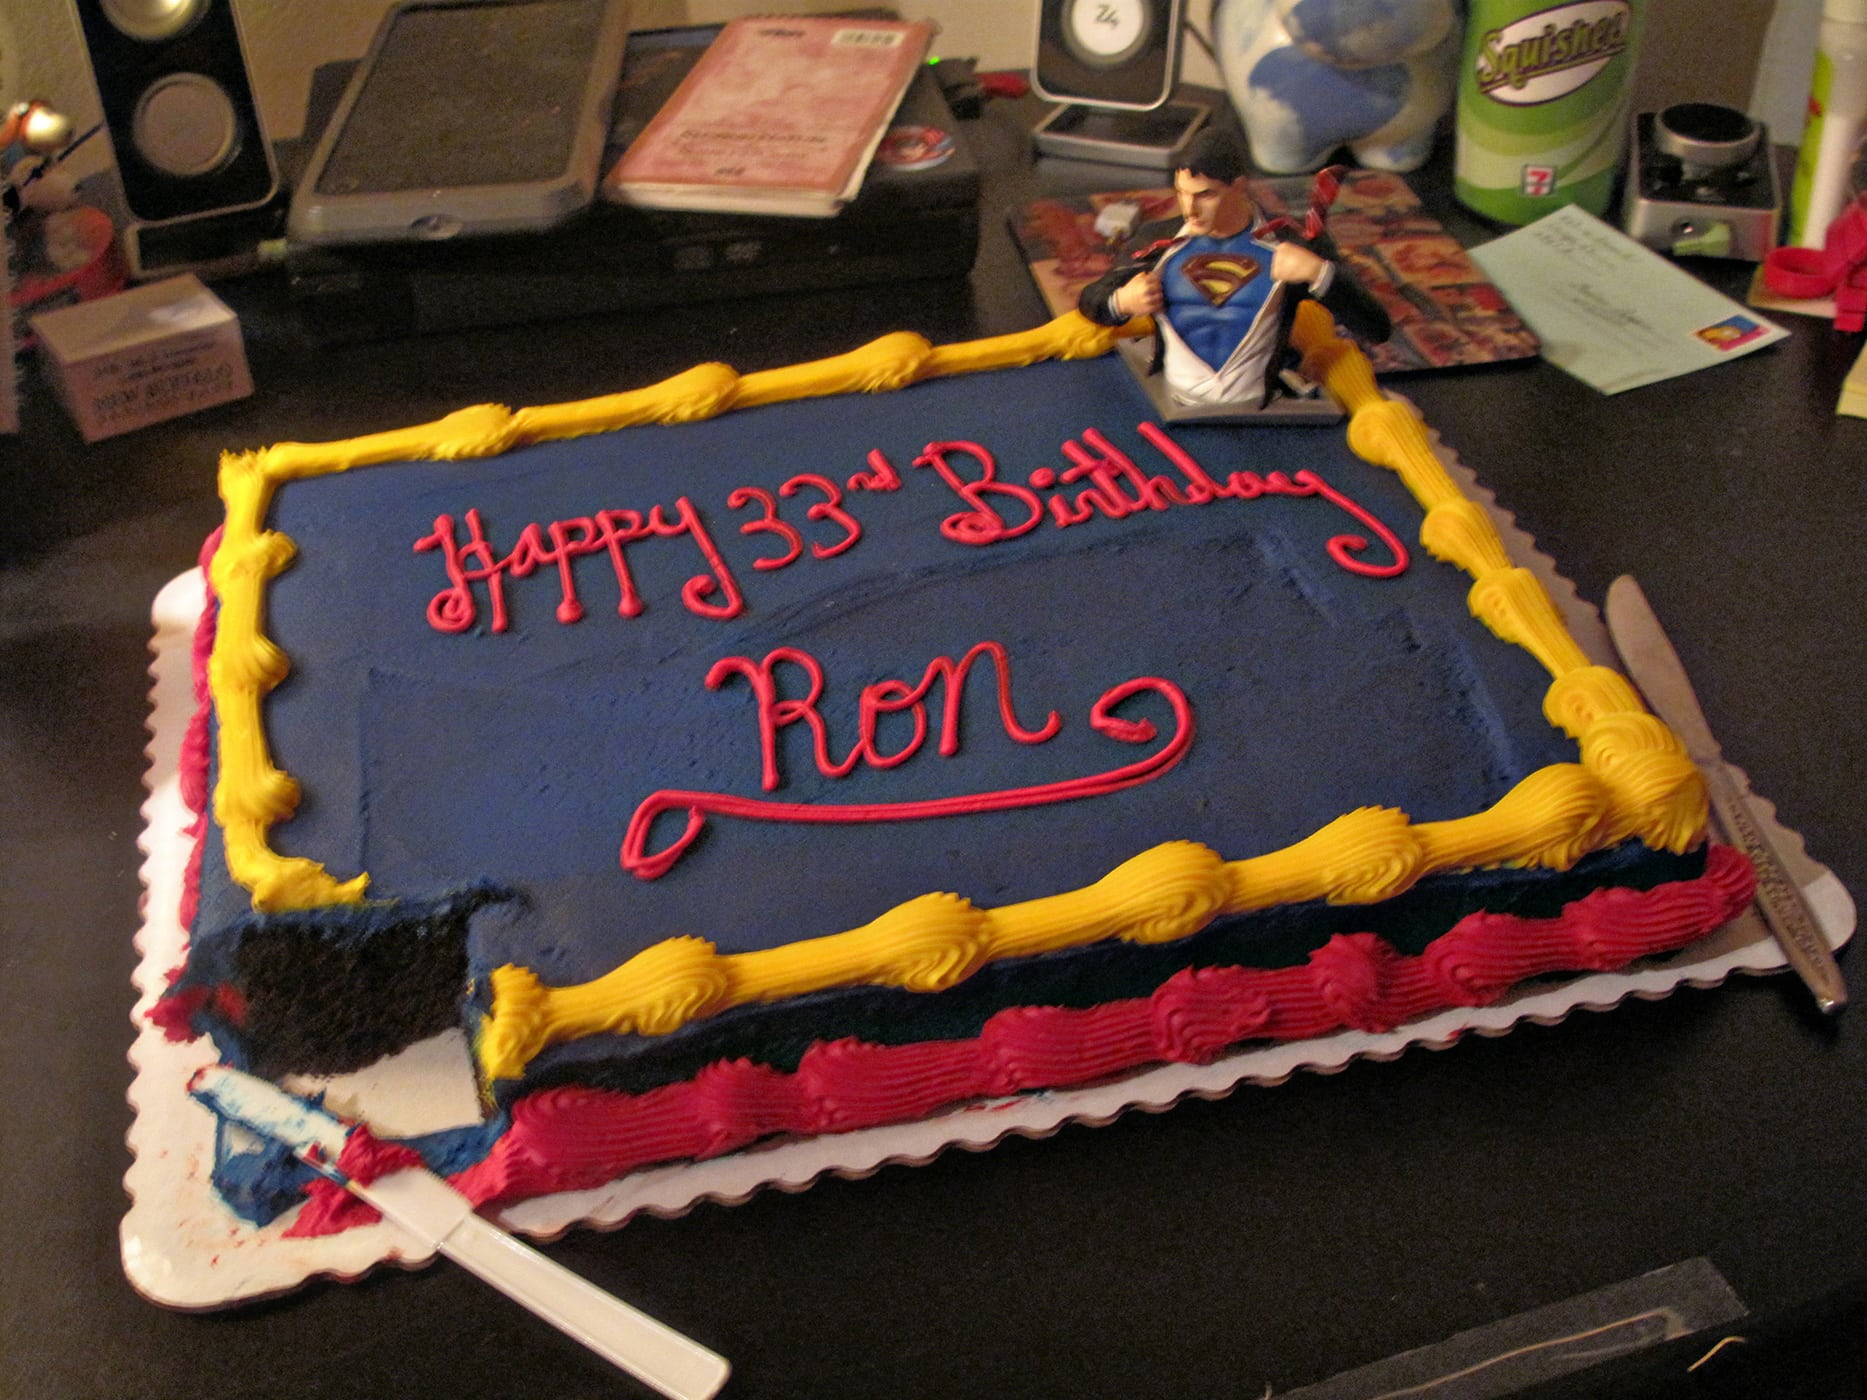 Superman cake for ROn's birthday